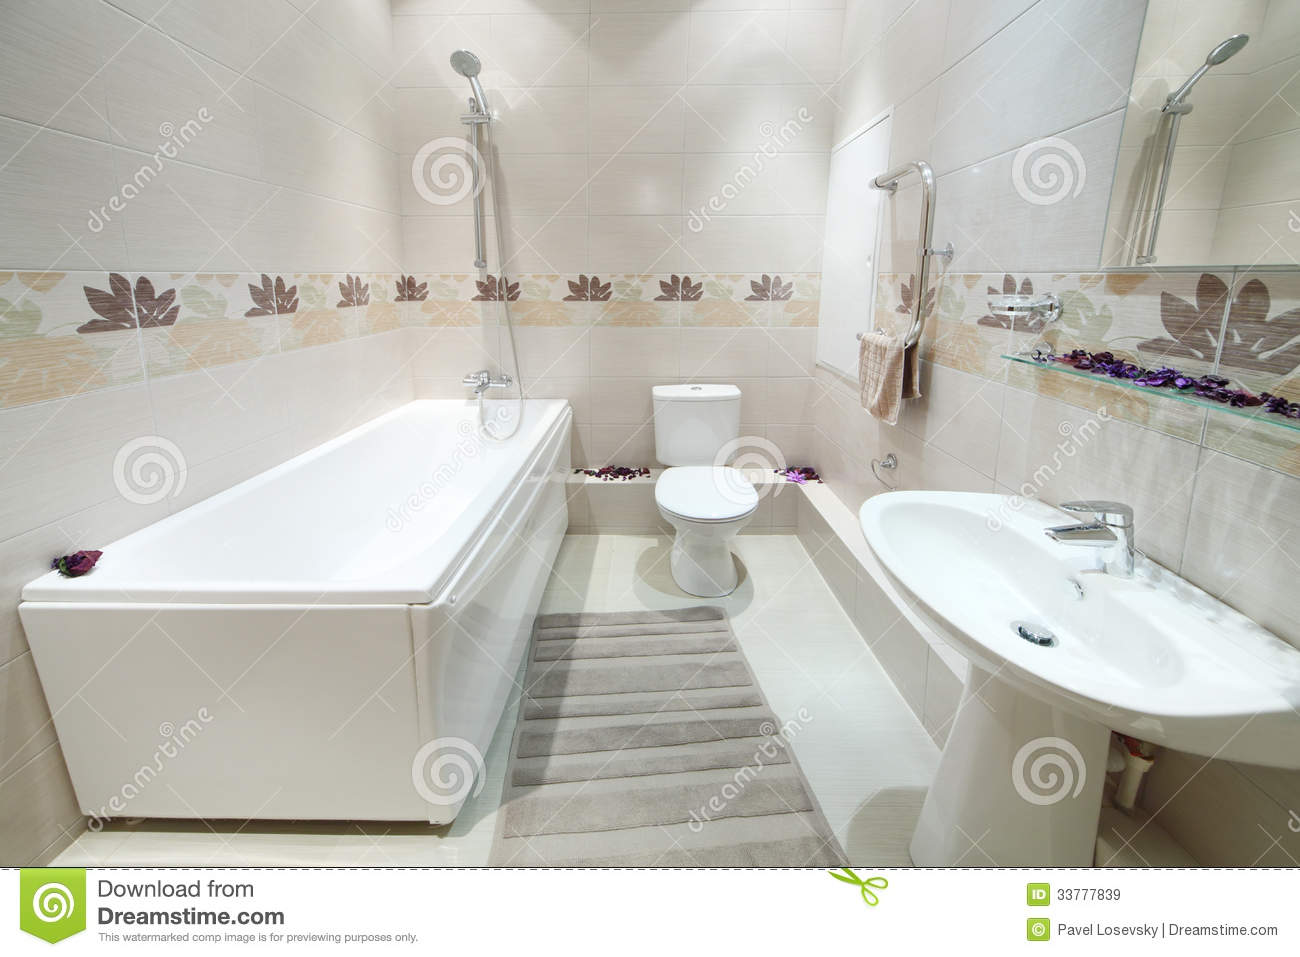 Clean And New Bathroom With Toilet With Tiles On Walls Stock Image ...